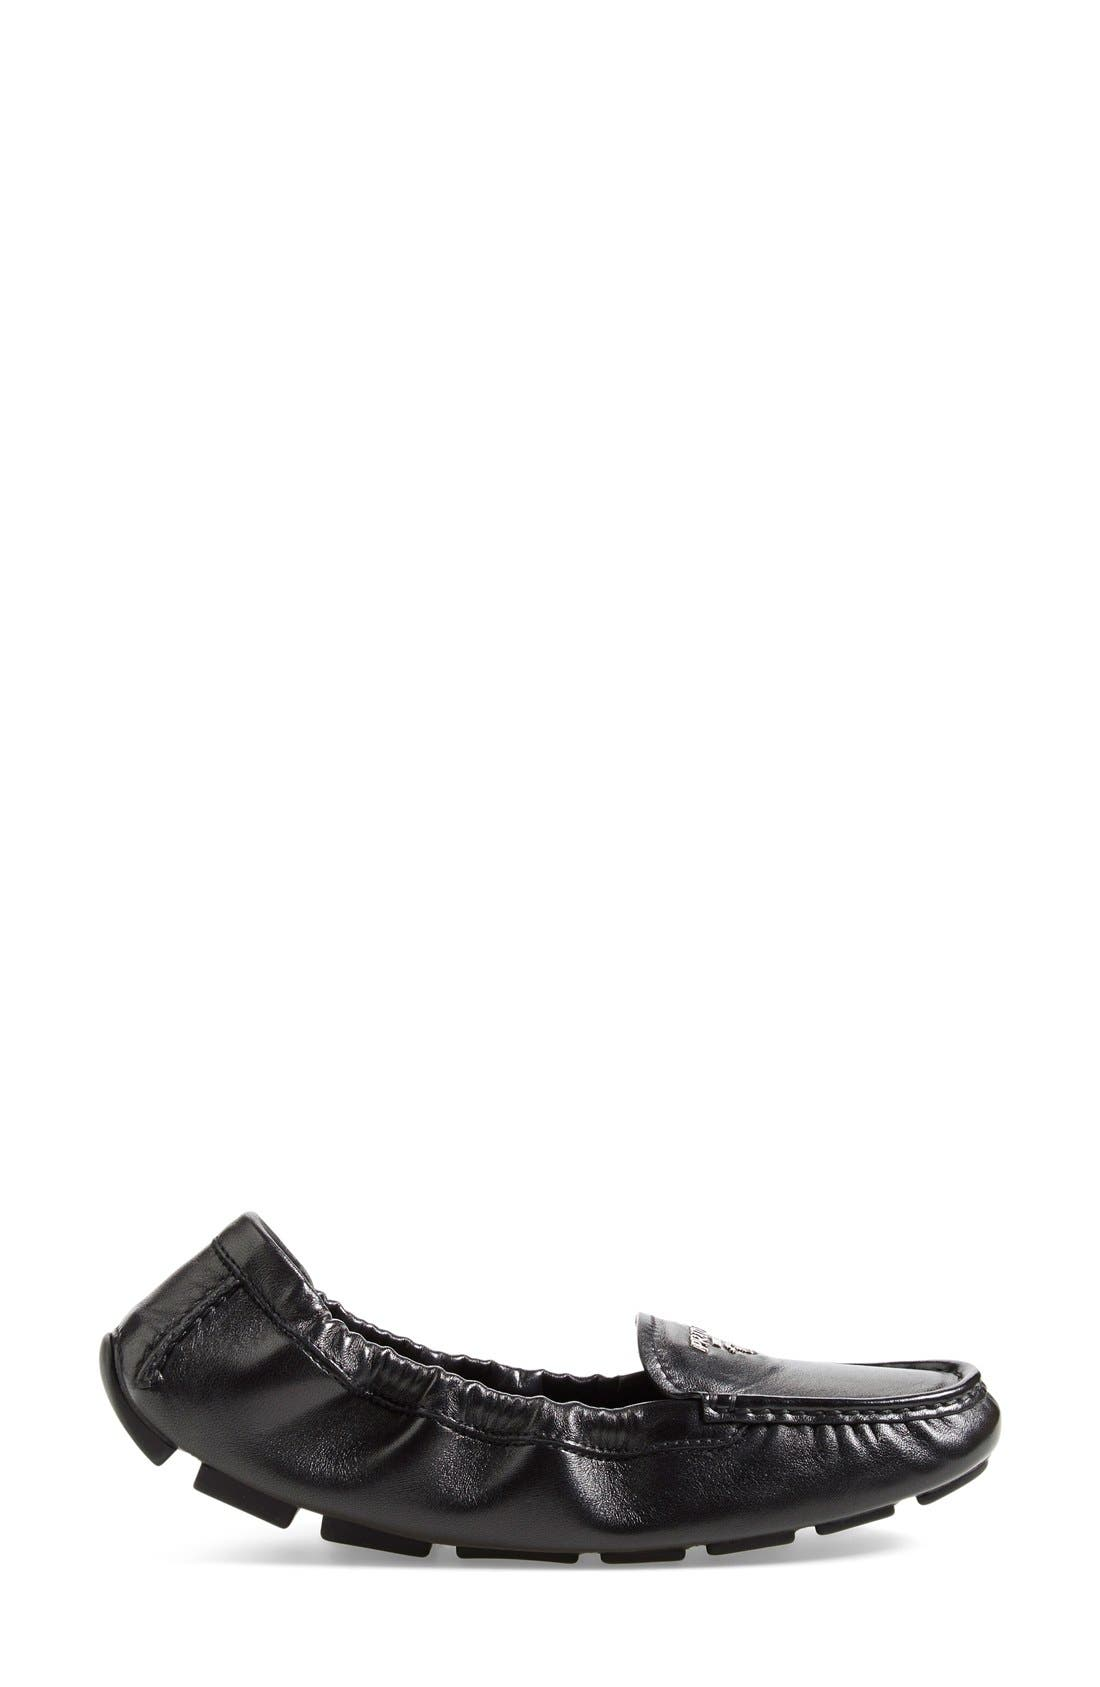 'Scrunch' Driving Loafer,                             Alternate thumbnail 4, color,                             Black Leather